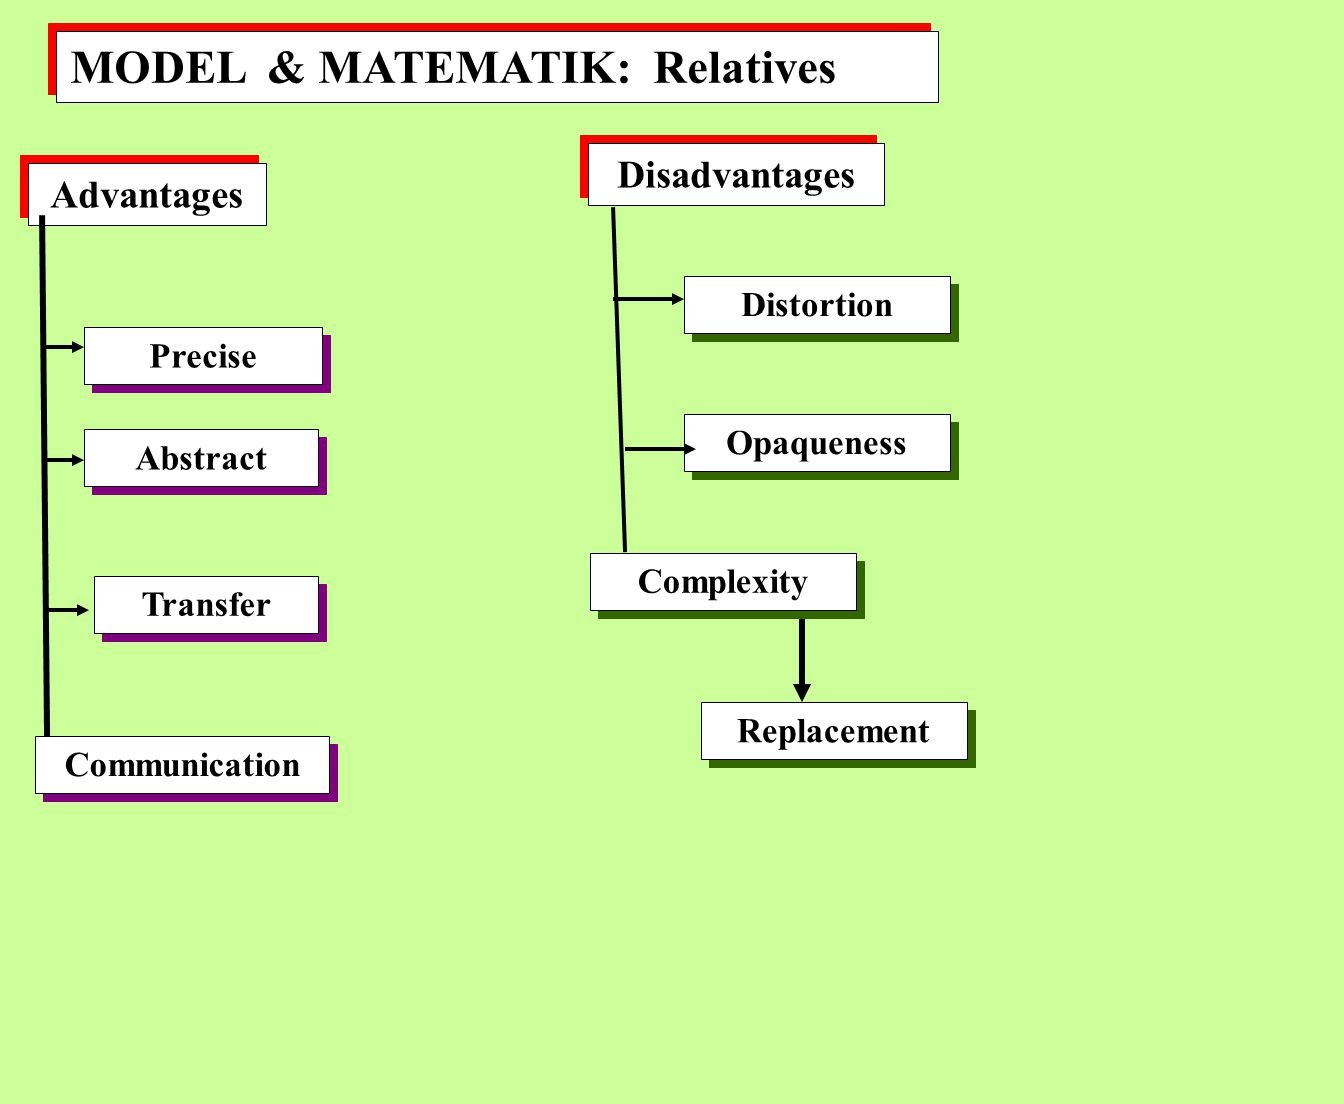 MODEL & MATEMATIK: Families Types Basis Dynamics Compartment Network Choices Stochastic Multivariate